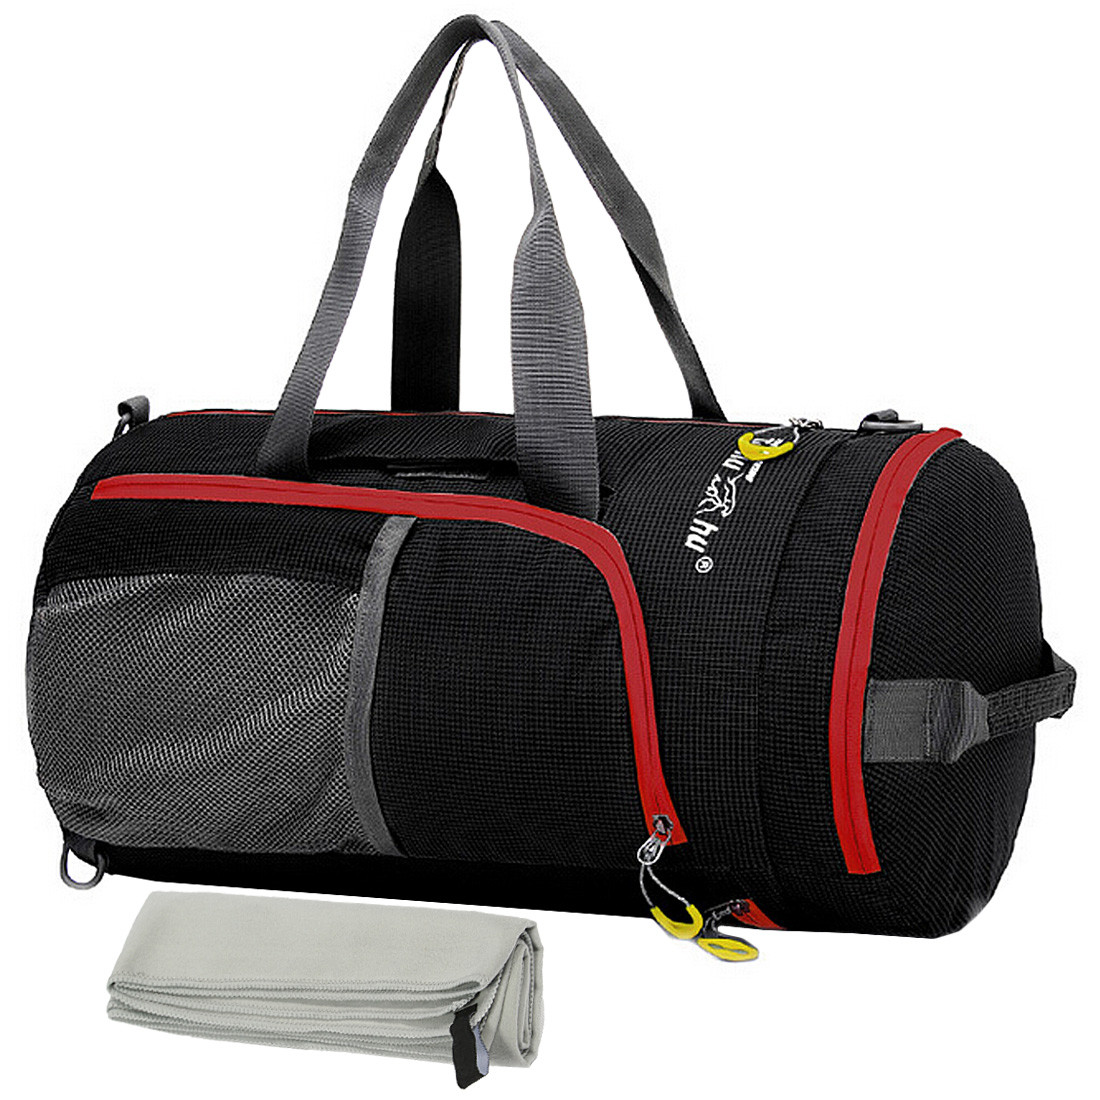 db3a9c93c4 kilofly Foldable Ultra Light Sport Backpack Duffel Gym Bag + Quick Dry  Towel Set. See more images